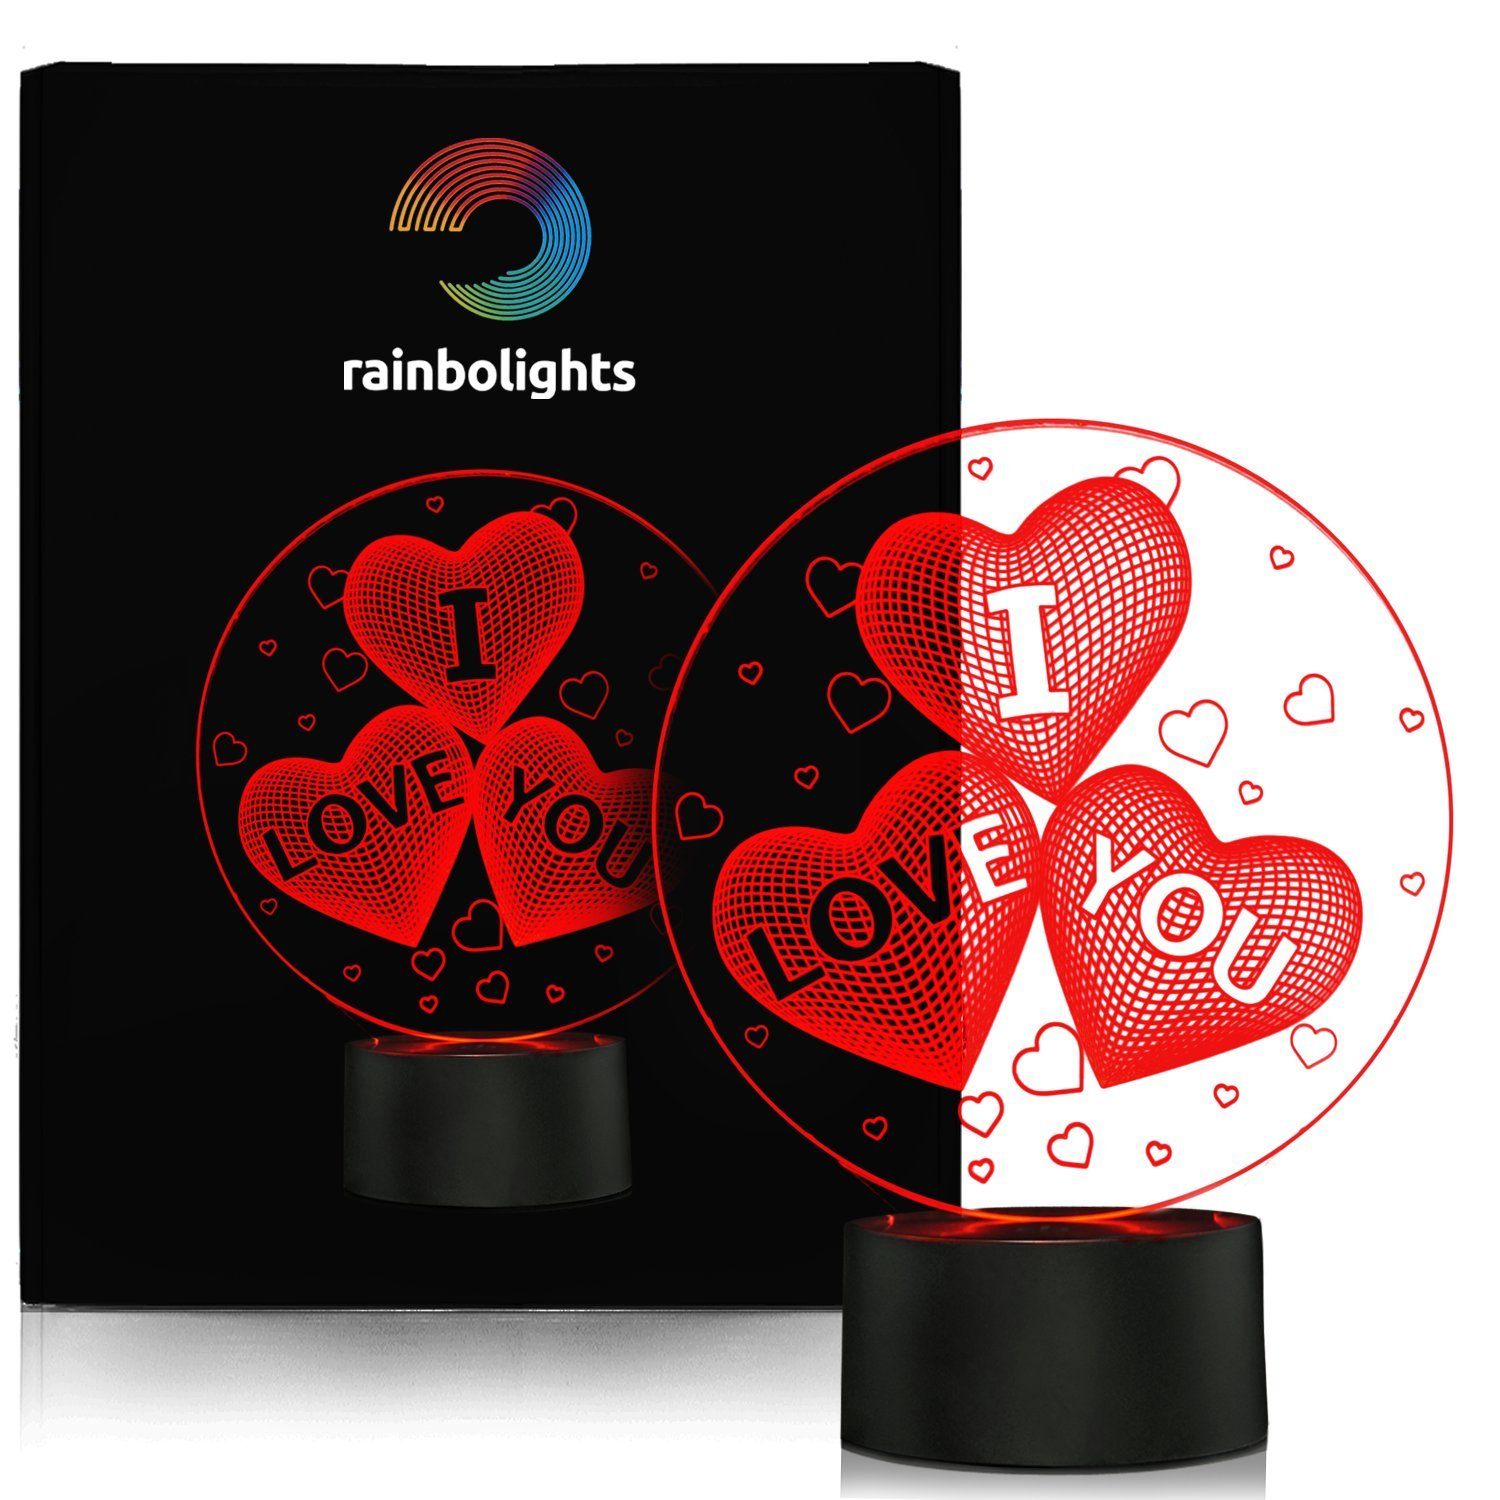 I LOVE YOU GIFT 3D Illusion Night Light 7 COLOR A Great ANNIVERSARY GIFT Idea or a UNIQUE Way to tell someone HOW MUCH YOU LOVE THEM PERFECT For VALENTINES DAY comes with MAINS plug and USB cable